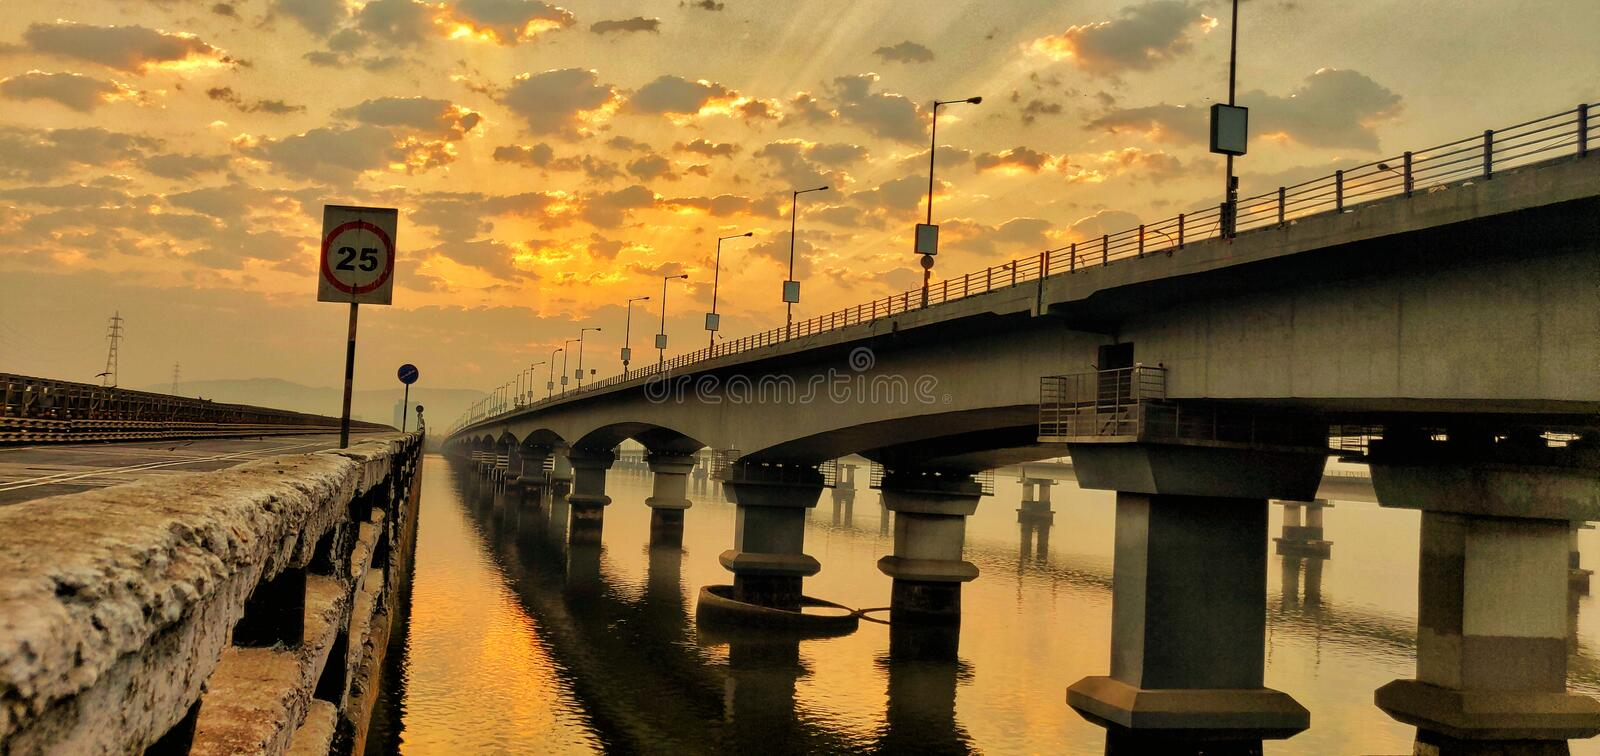 Vashi bridge, Navi Mumbai, Mumbai, India, Maharashtra, sunrise, orange. Vashi bridge navi mumbai india maharashtra sunrise orange royalty free stock images